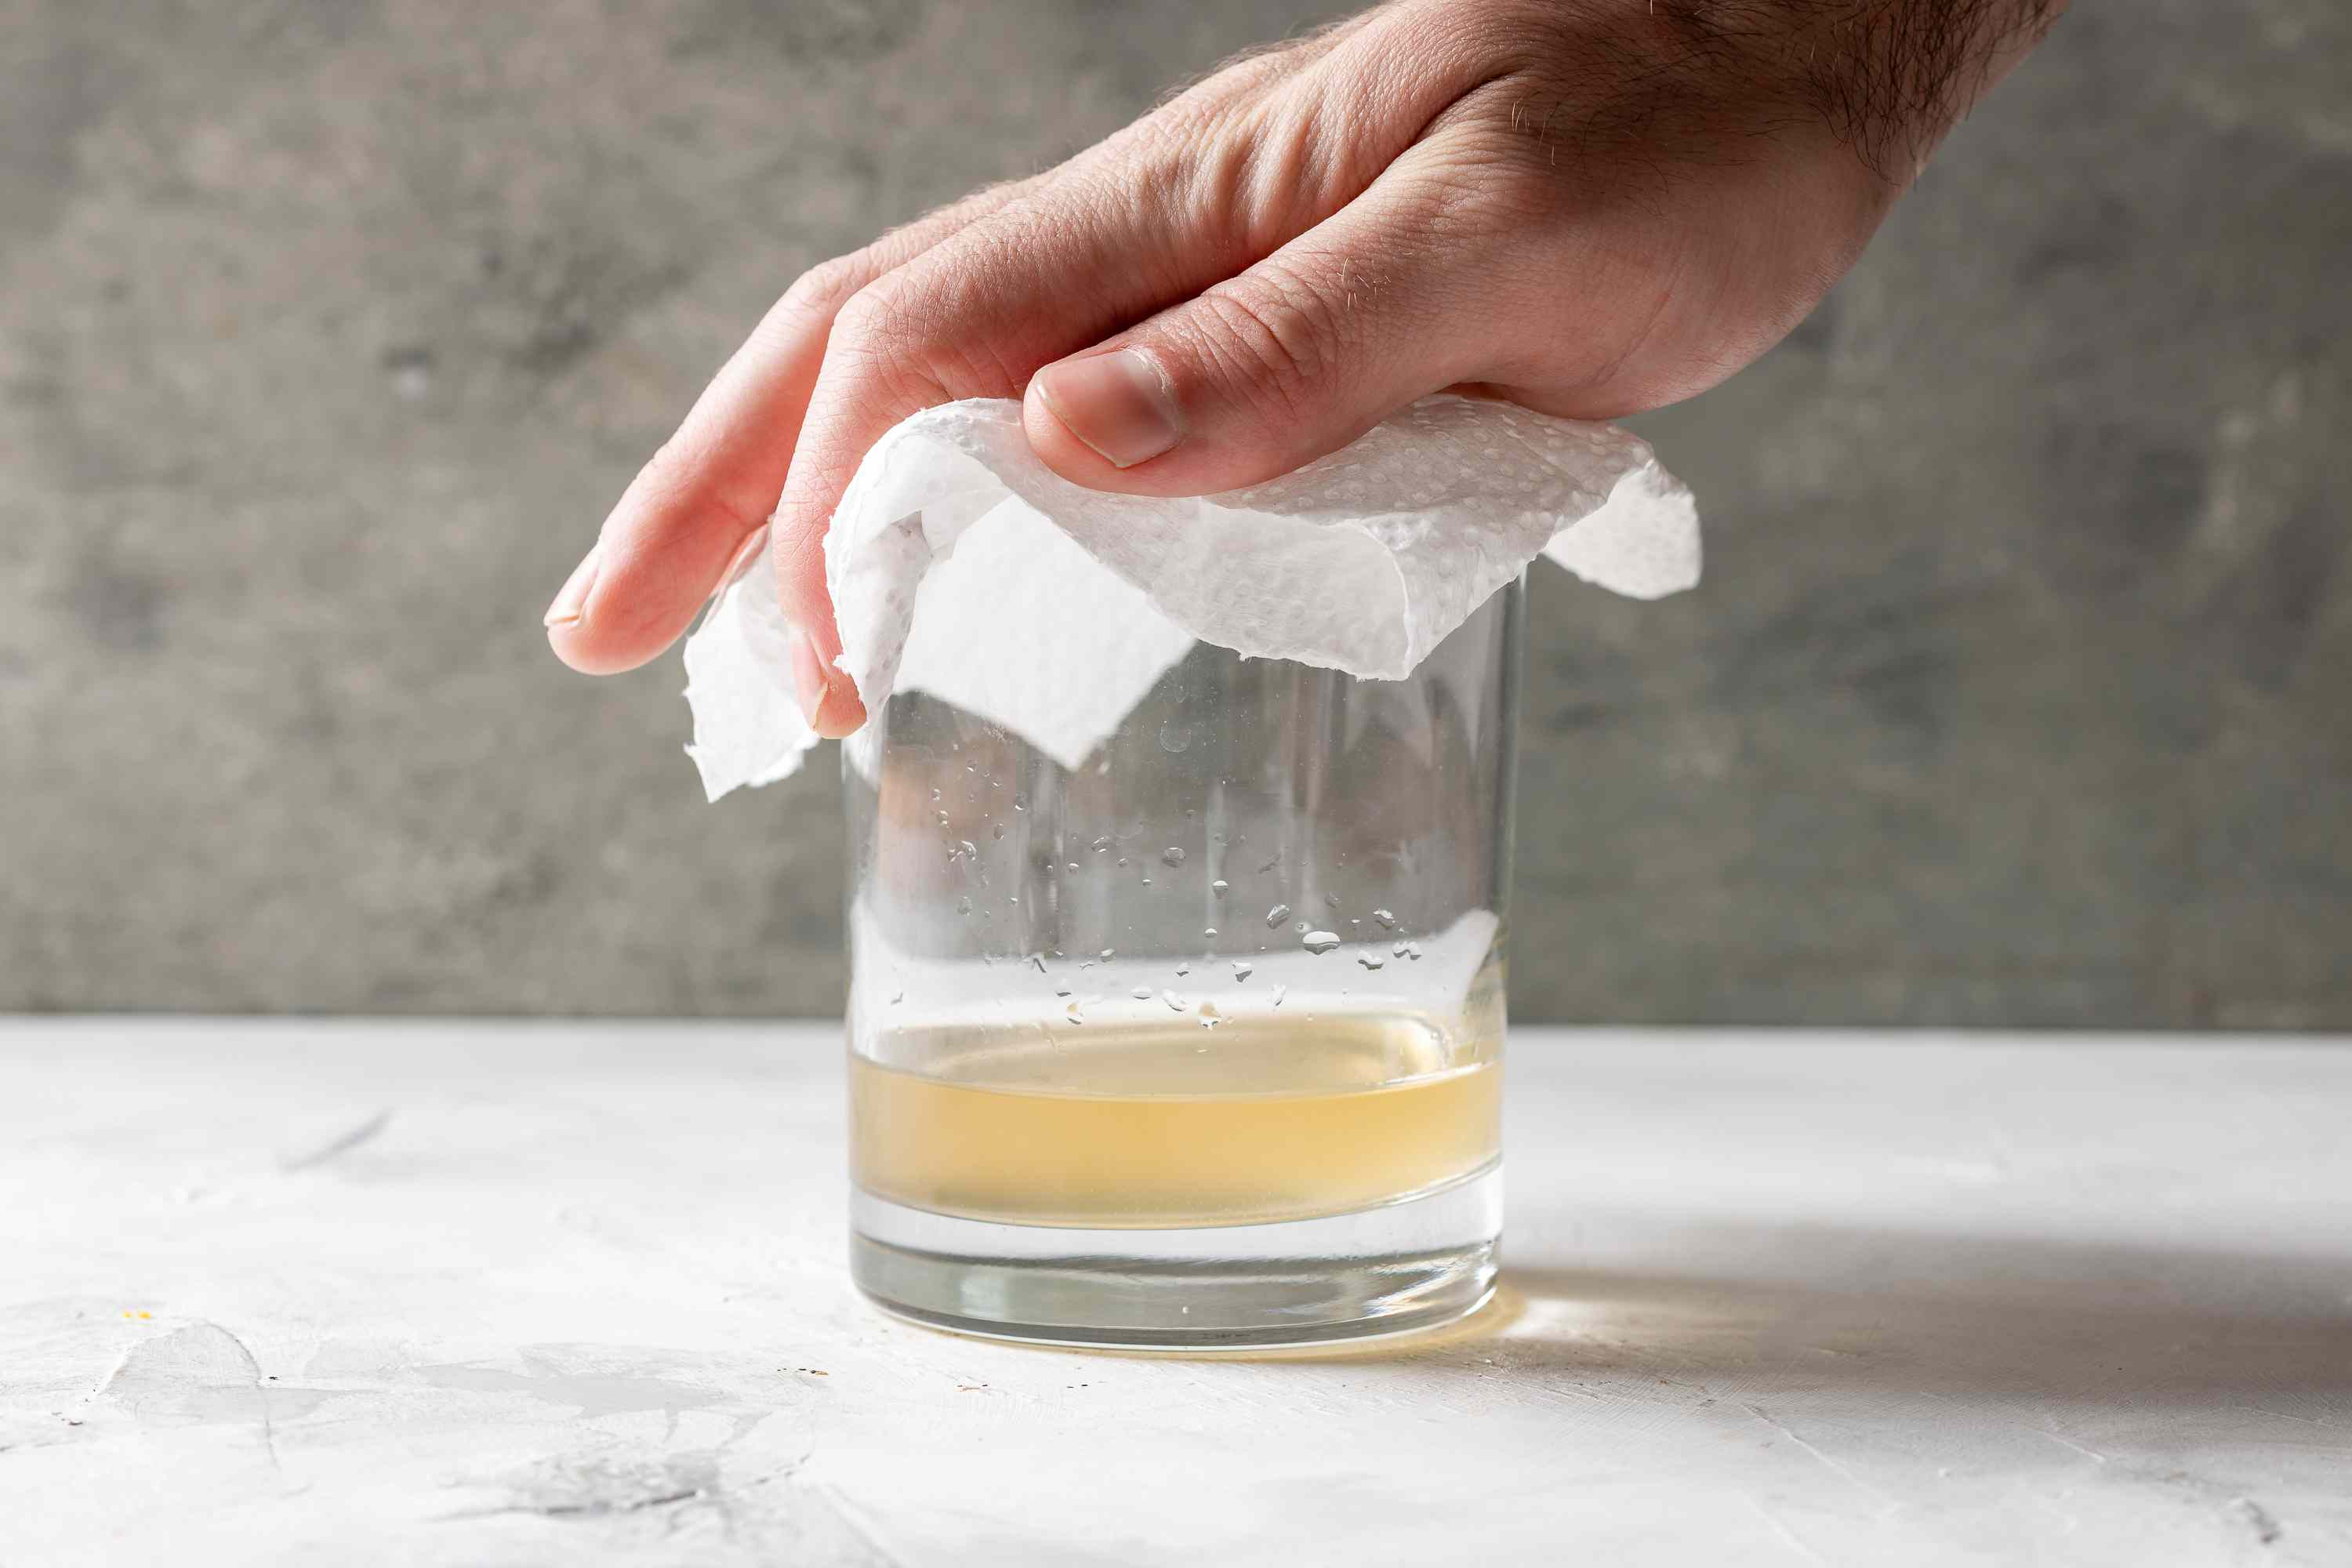 glass tequila and soda, hand holding napkin on top of glass